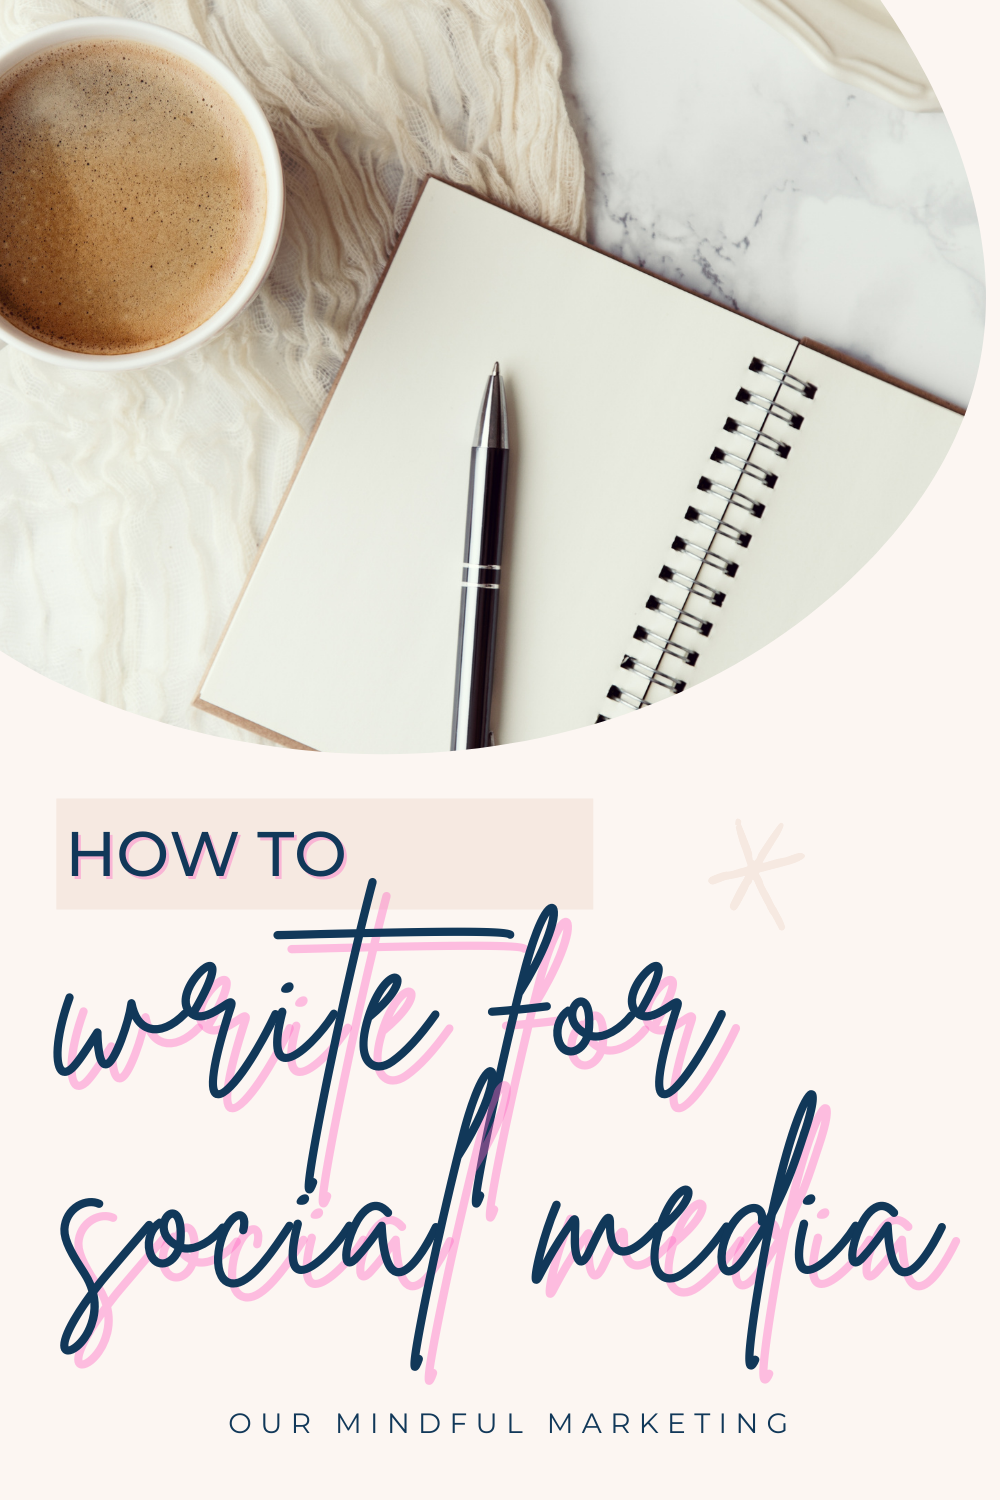 """An open-faced journal with a pen lying across its blank pages, next to a cappuccino. Underneath the journal, in dark-blue text it reads, """"How to write for social media"""" from Our Mindful Marketing."""